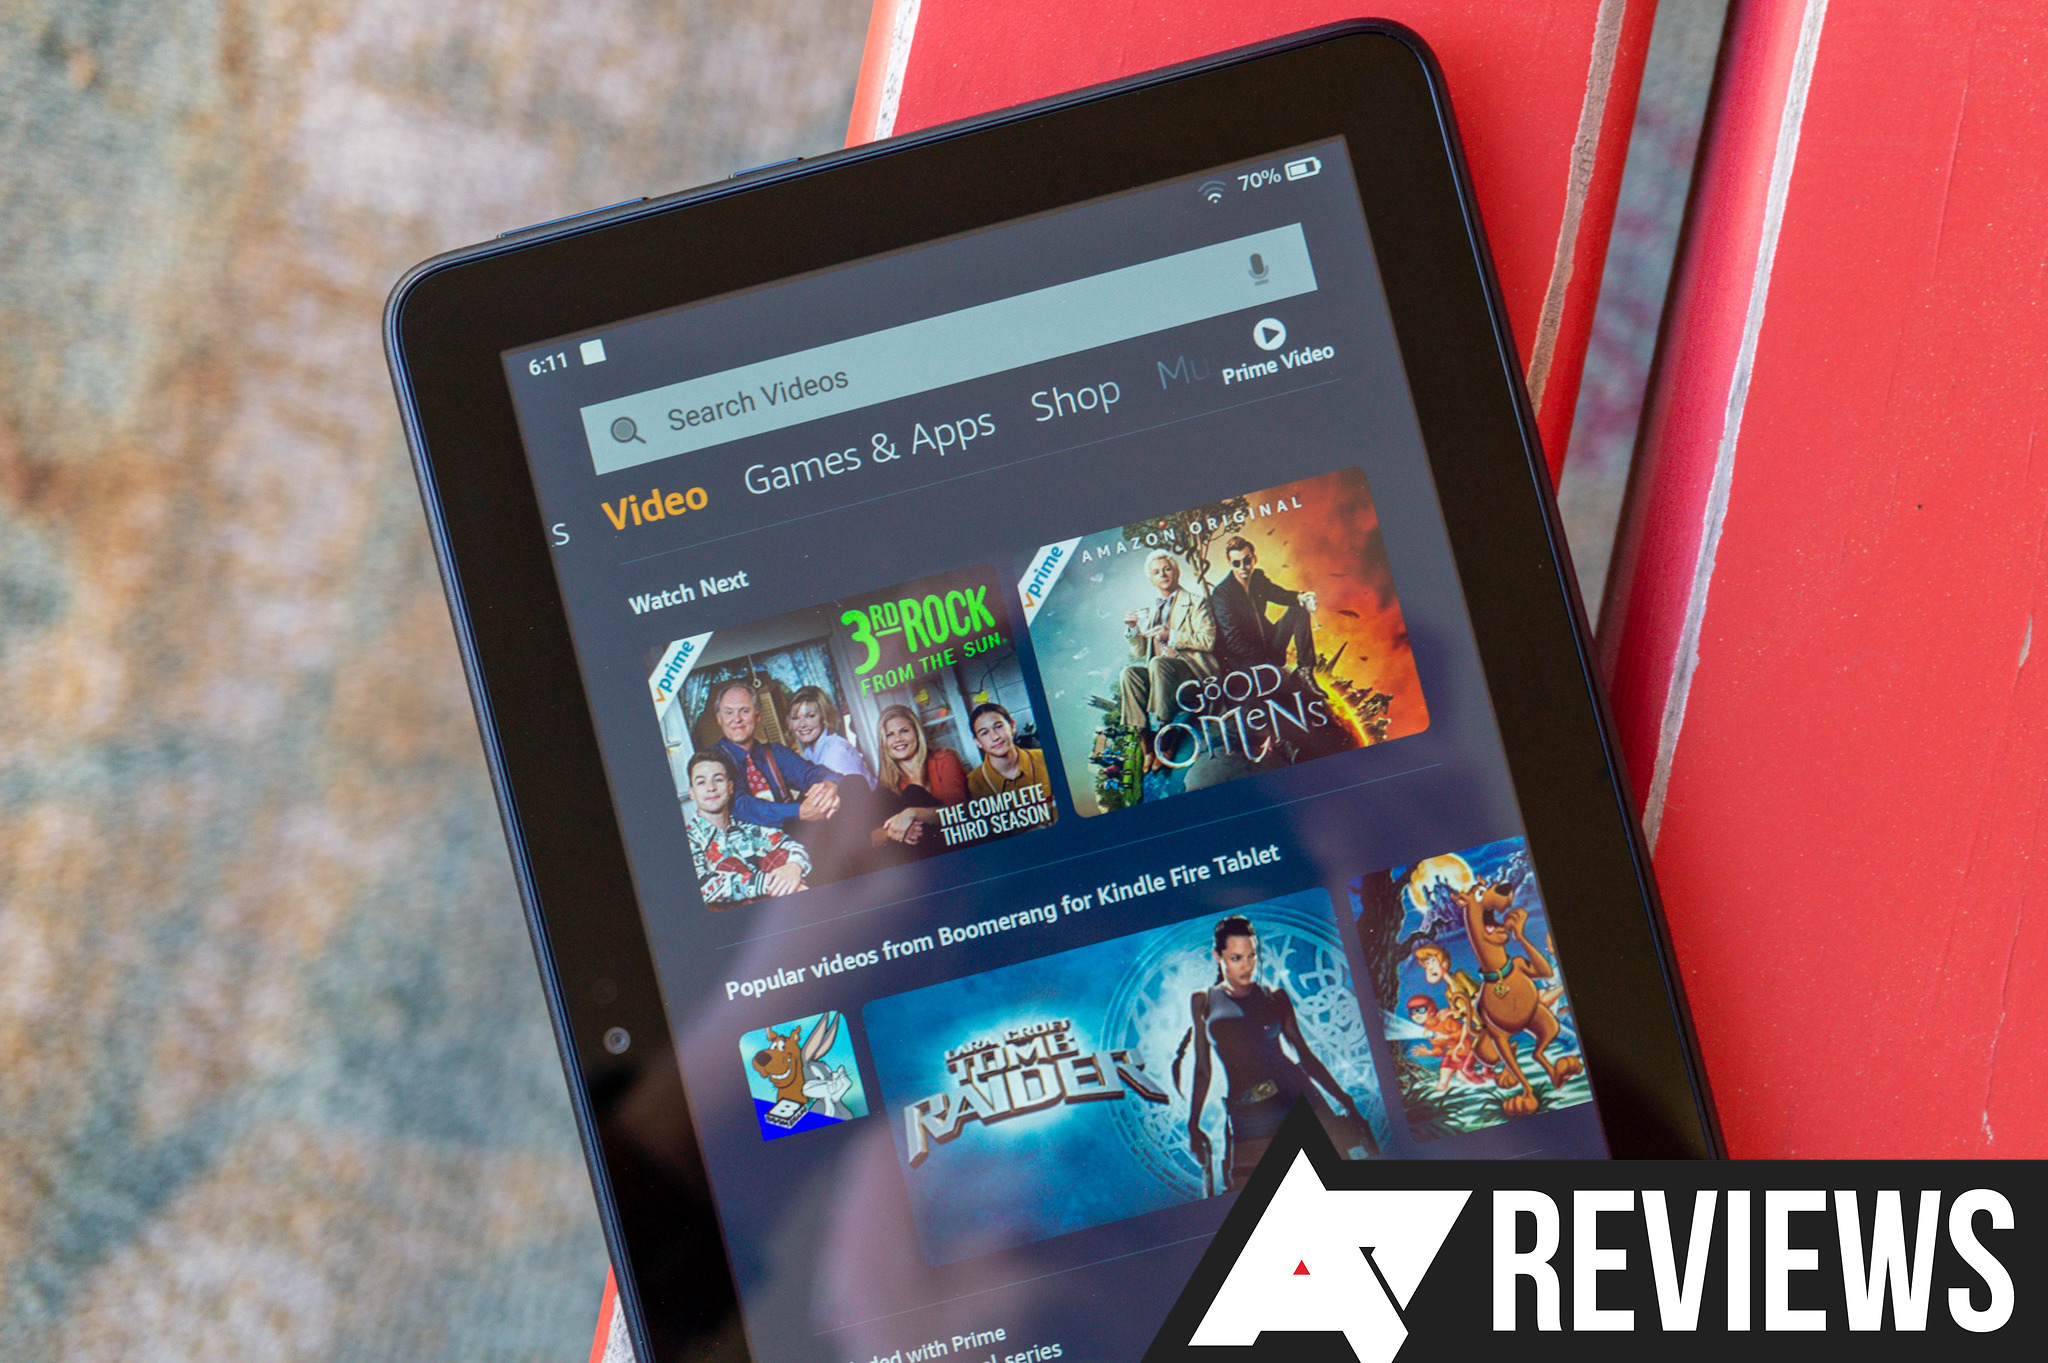 Amazon Fire Hd 8 2020 Review The Good Cheap Android Tablet Google Won T Build